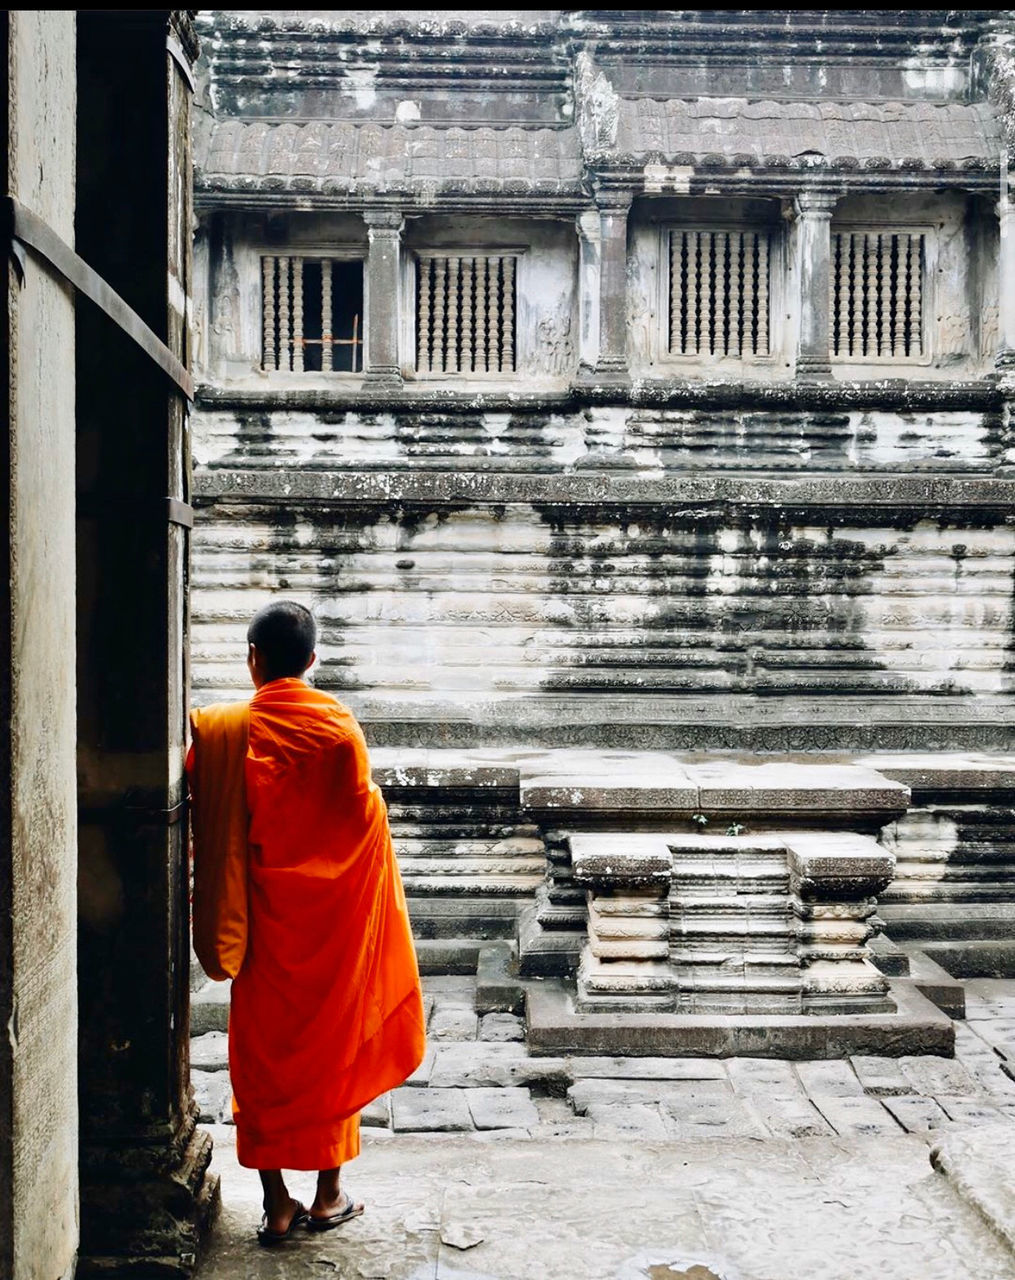 FULL LENGTH REAR VIEW OF MAN WALKING OUTSIDE TEMPLE